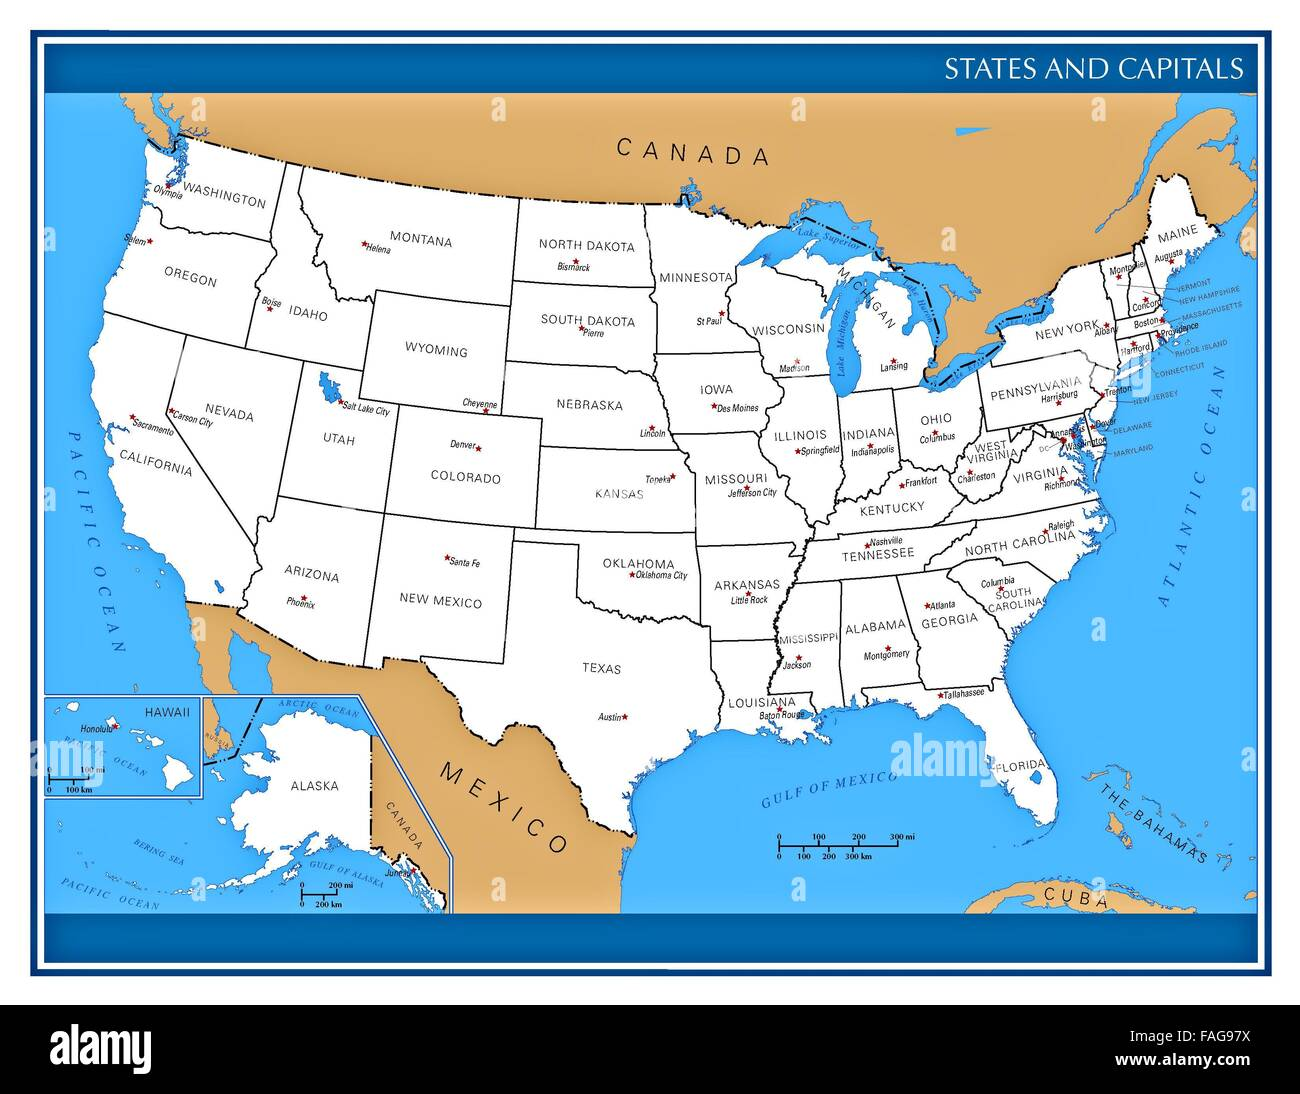 United States Map Alaska And Hawaii Stock Photos  United States - Map of usa with capitals and states